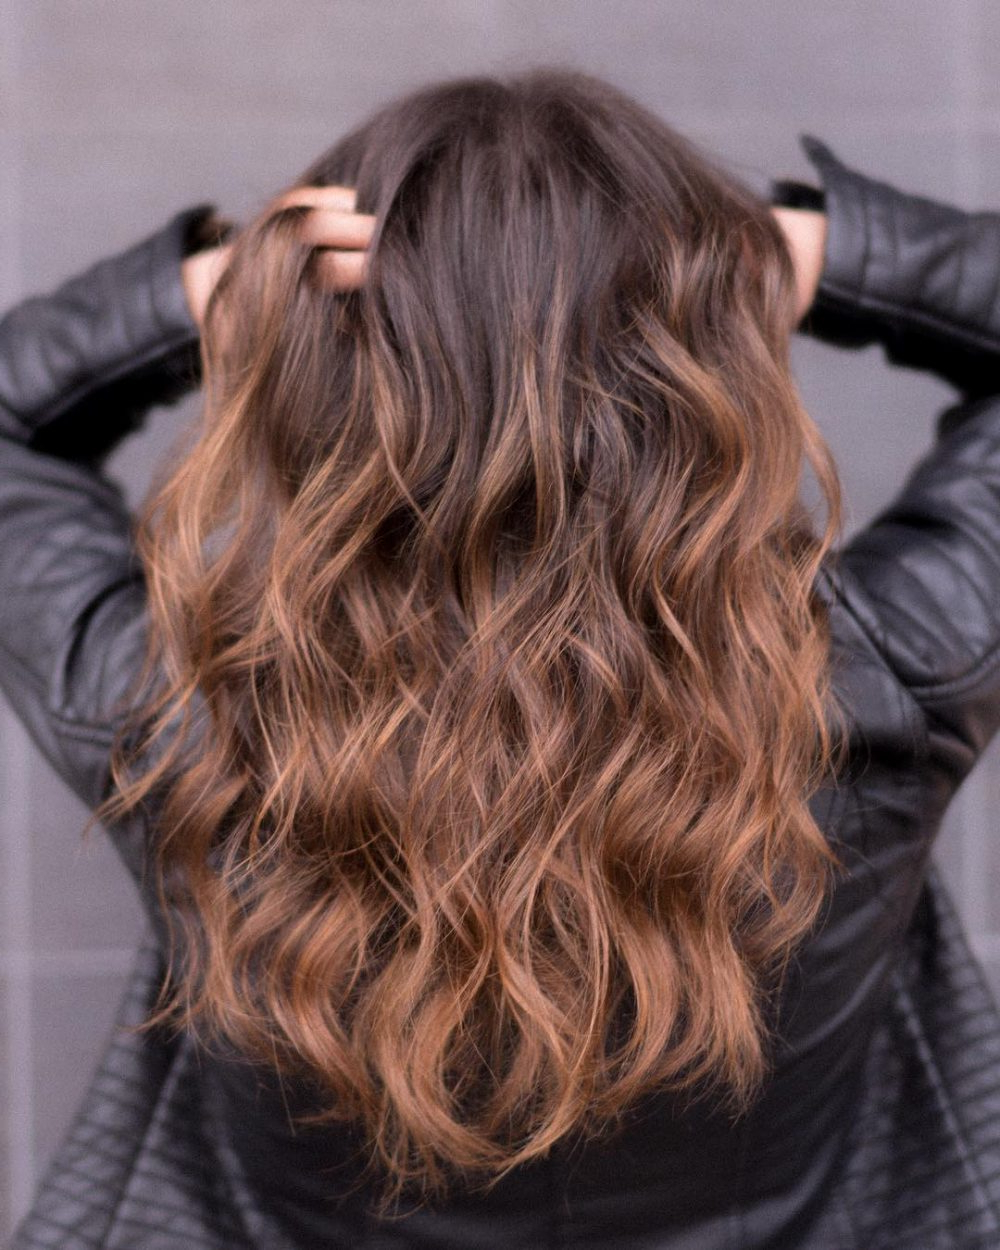 34 Hottest Long Brown Hair Ideas For Women In 2019 Pertaining To Popular Long Layered Light Chocolate Brown Haircuts (Gallery 7 of 20)